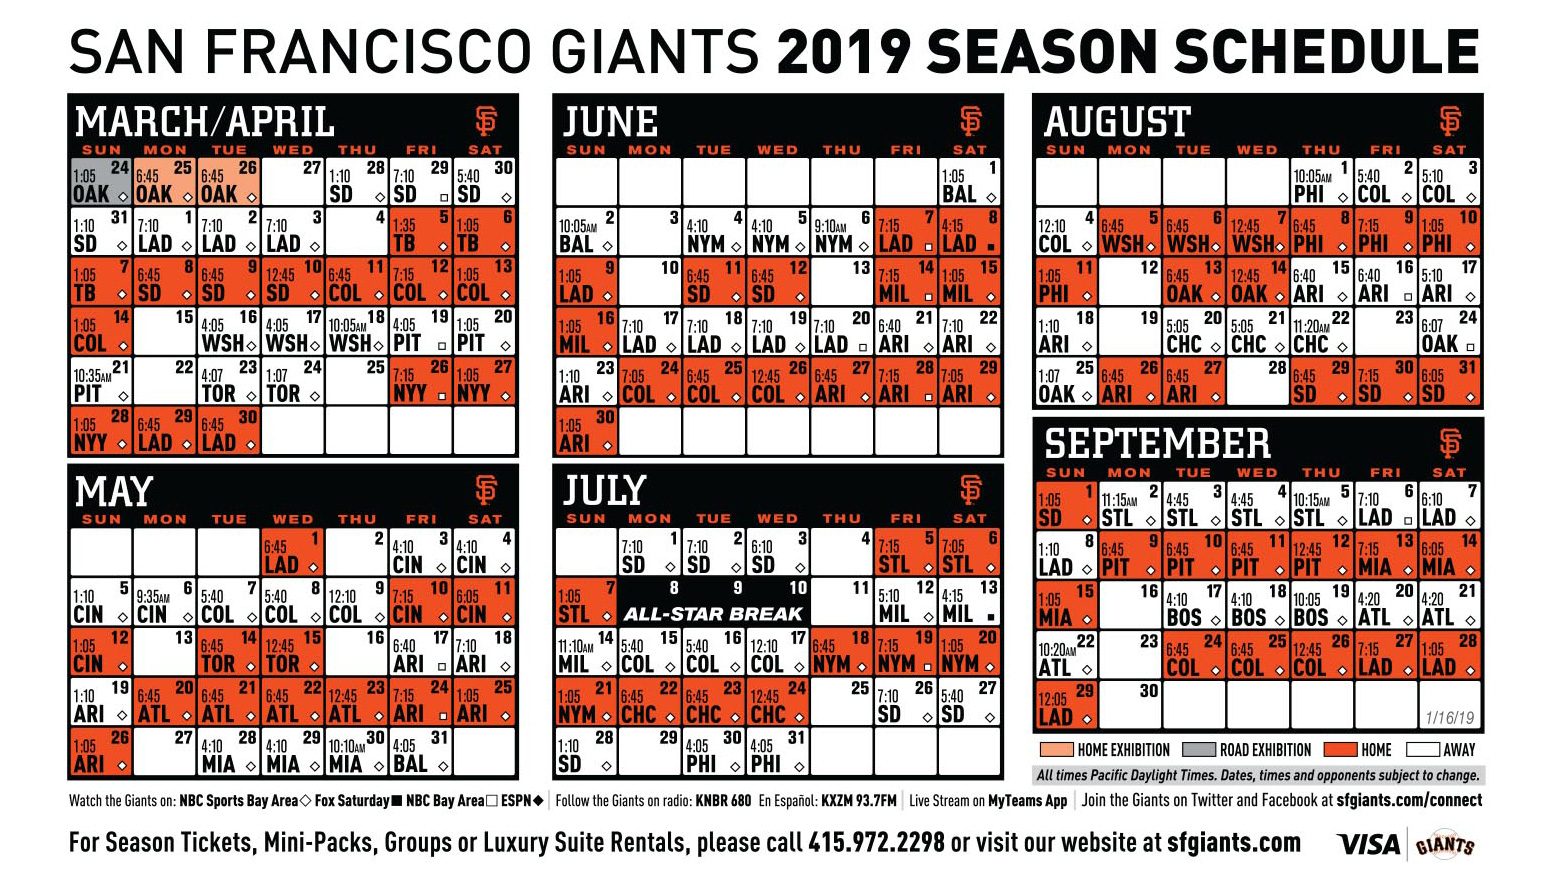 graphic regarding Houston Astros Printable Schedule titled Giants 2019 Printable Agenda San Francisco Giants